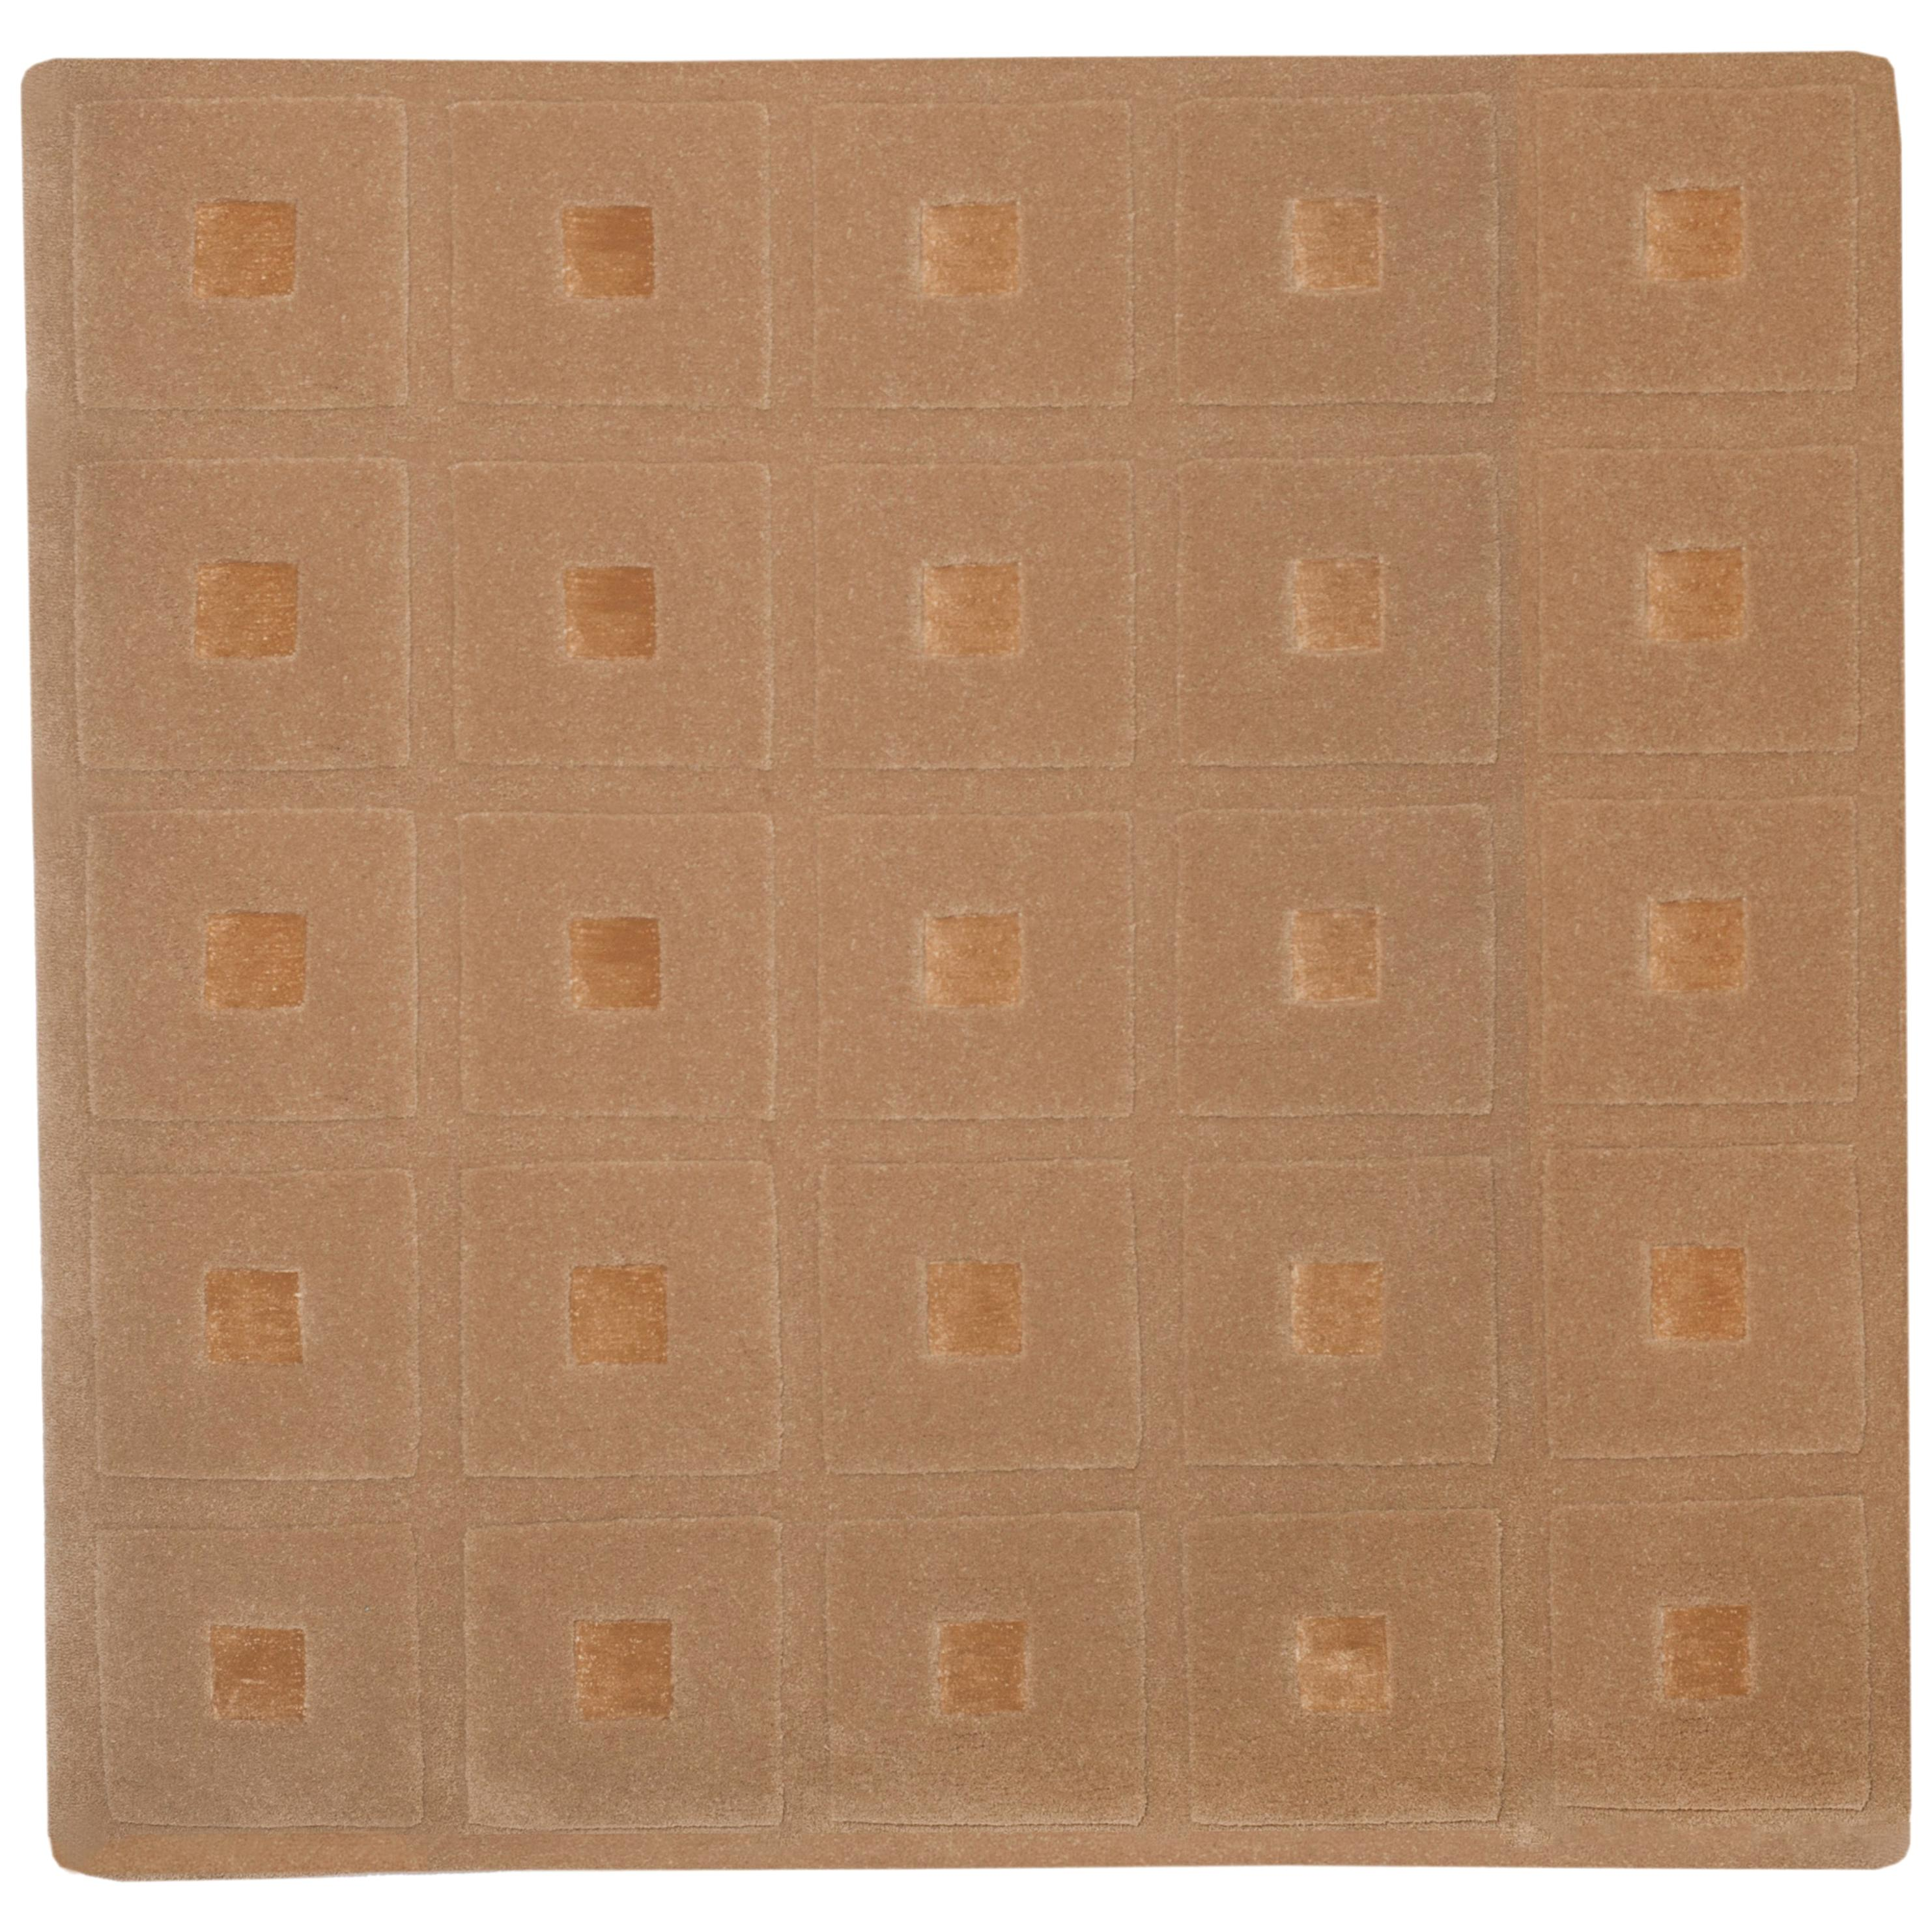 21st Century Handtufted Wool and Silk Rug Carpet made in Spain Checkers Brown